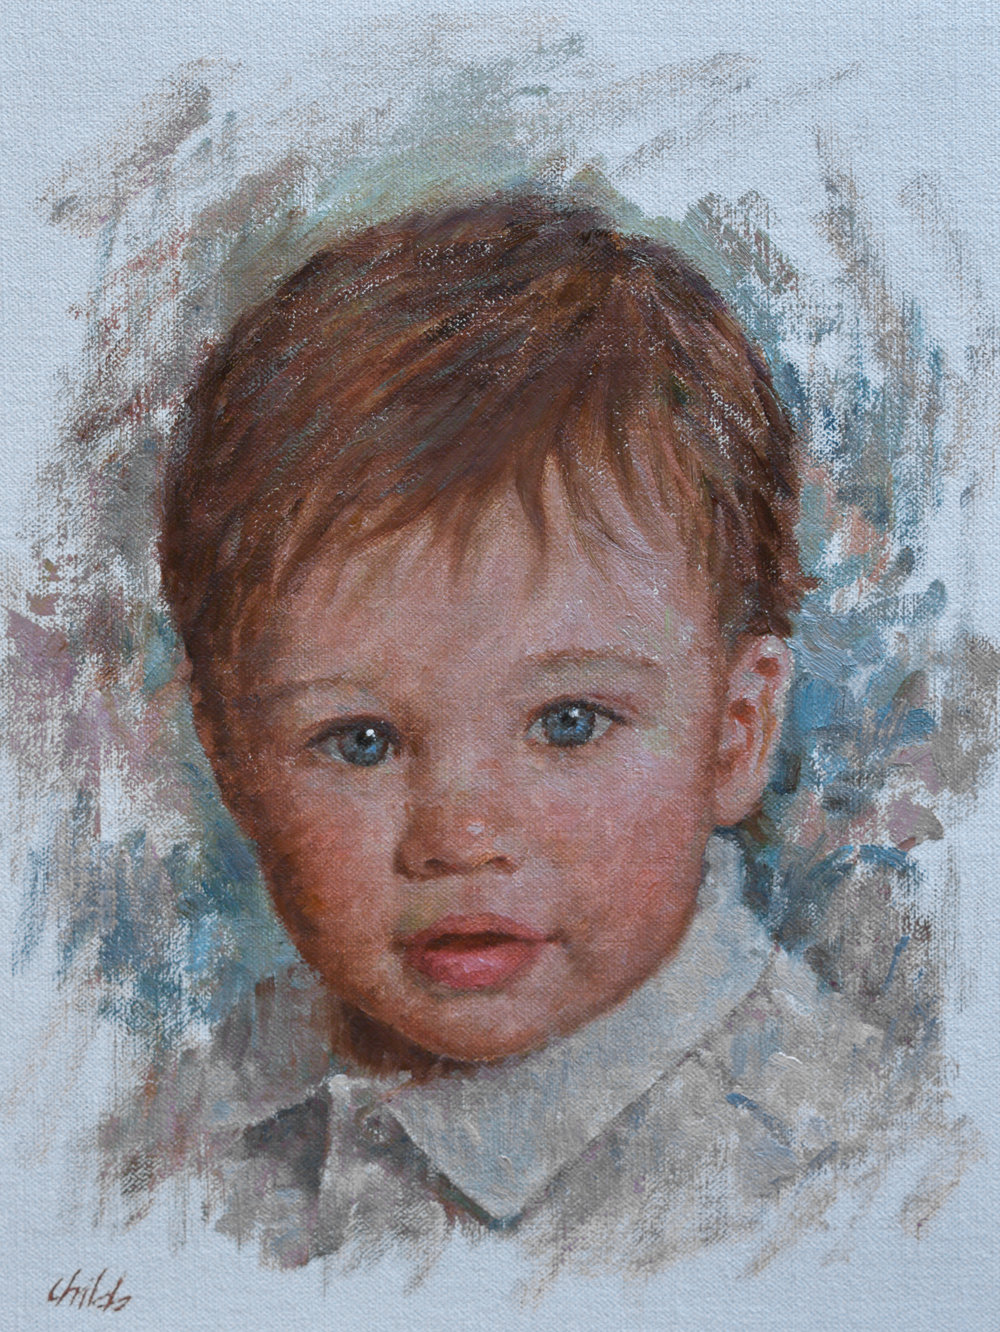 Boy with White Collar - 9x12